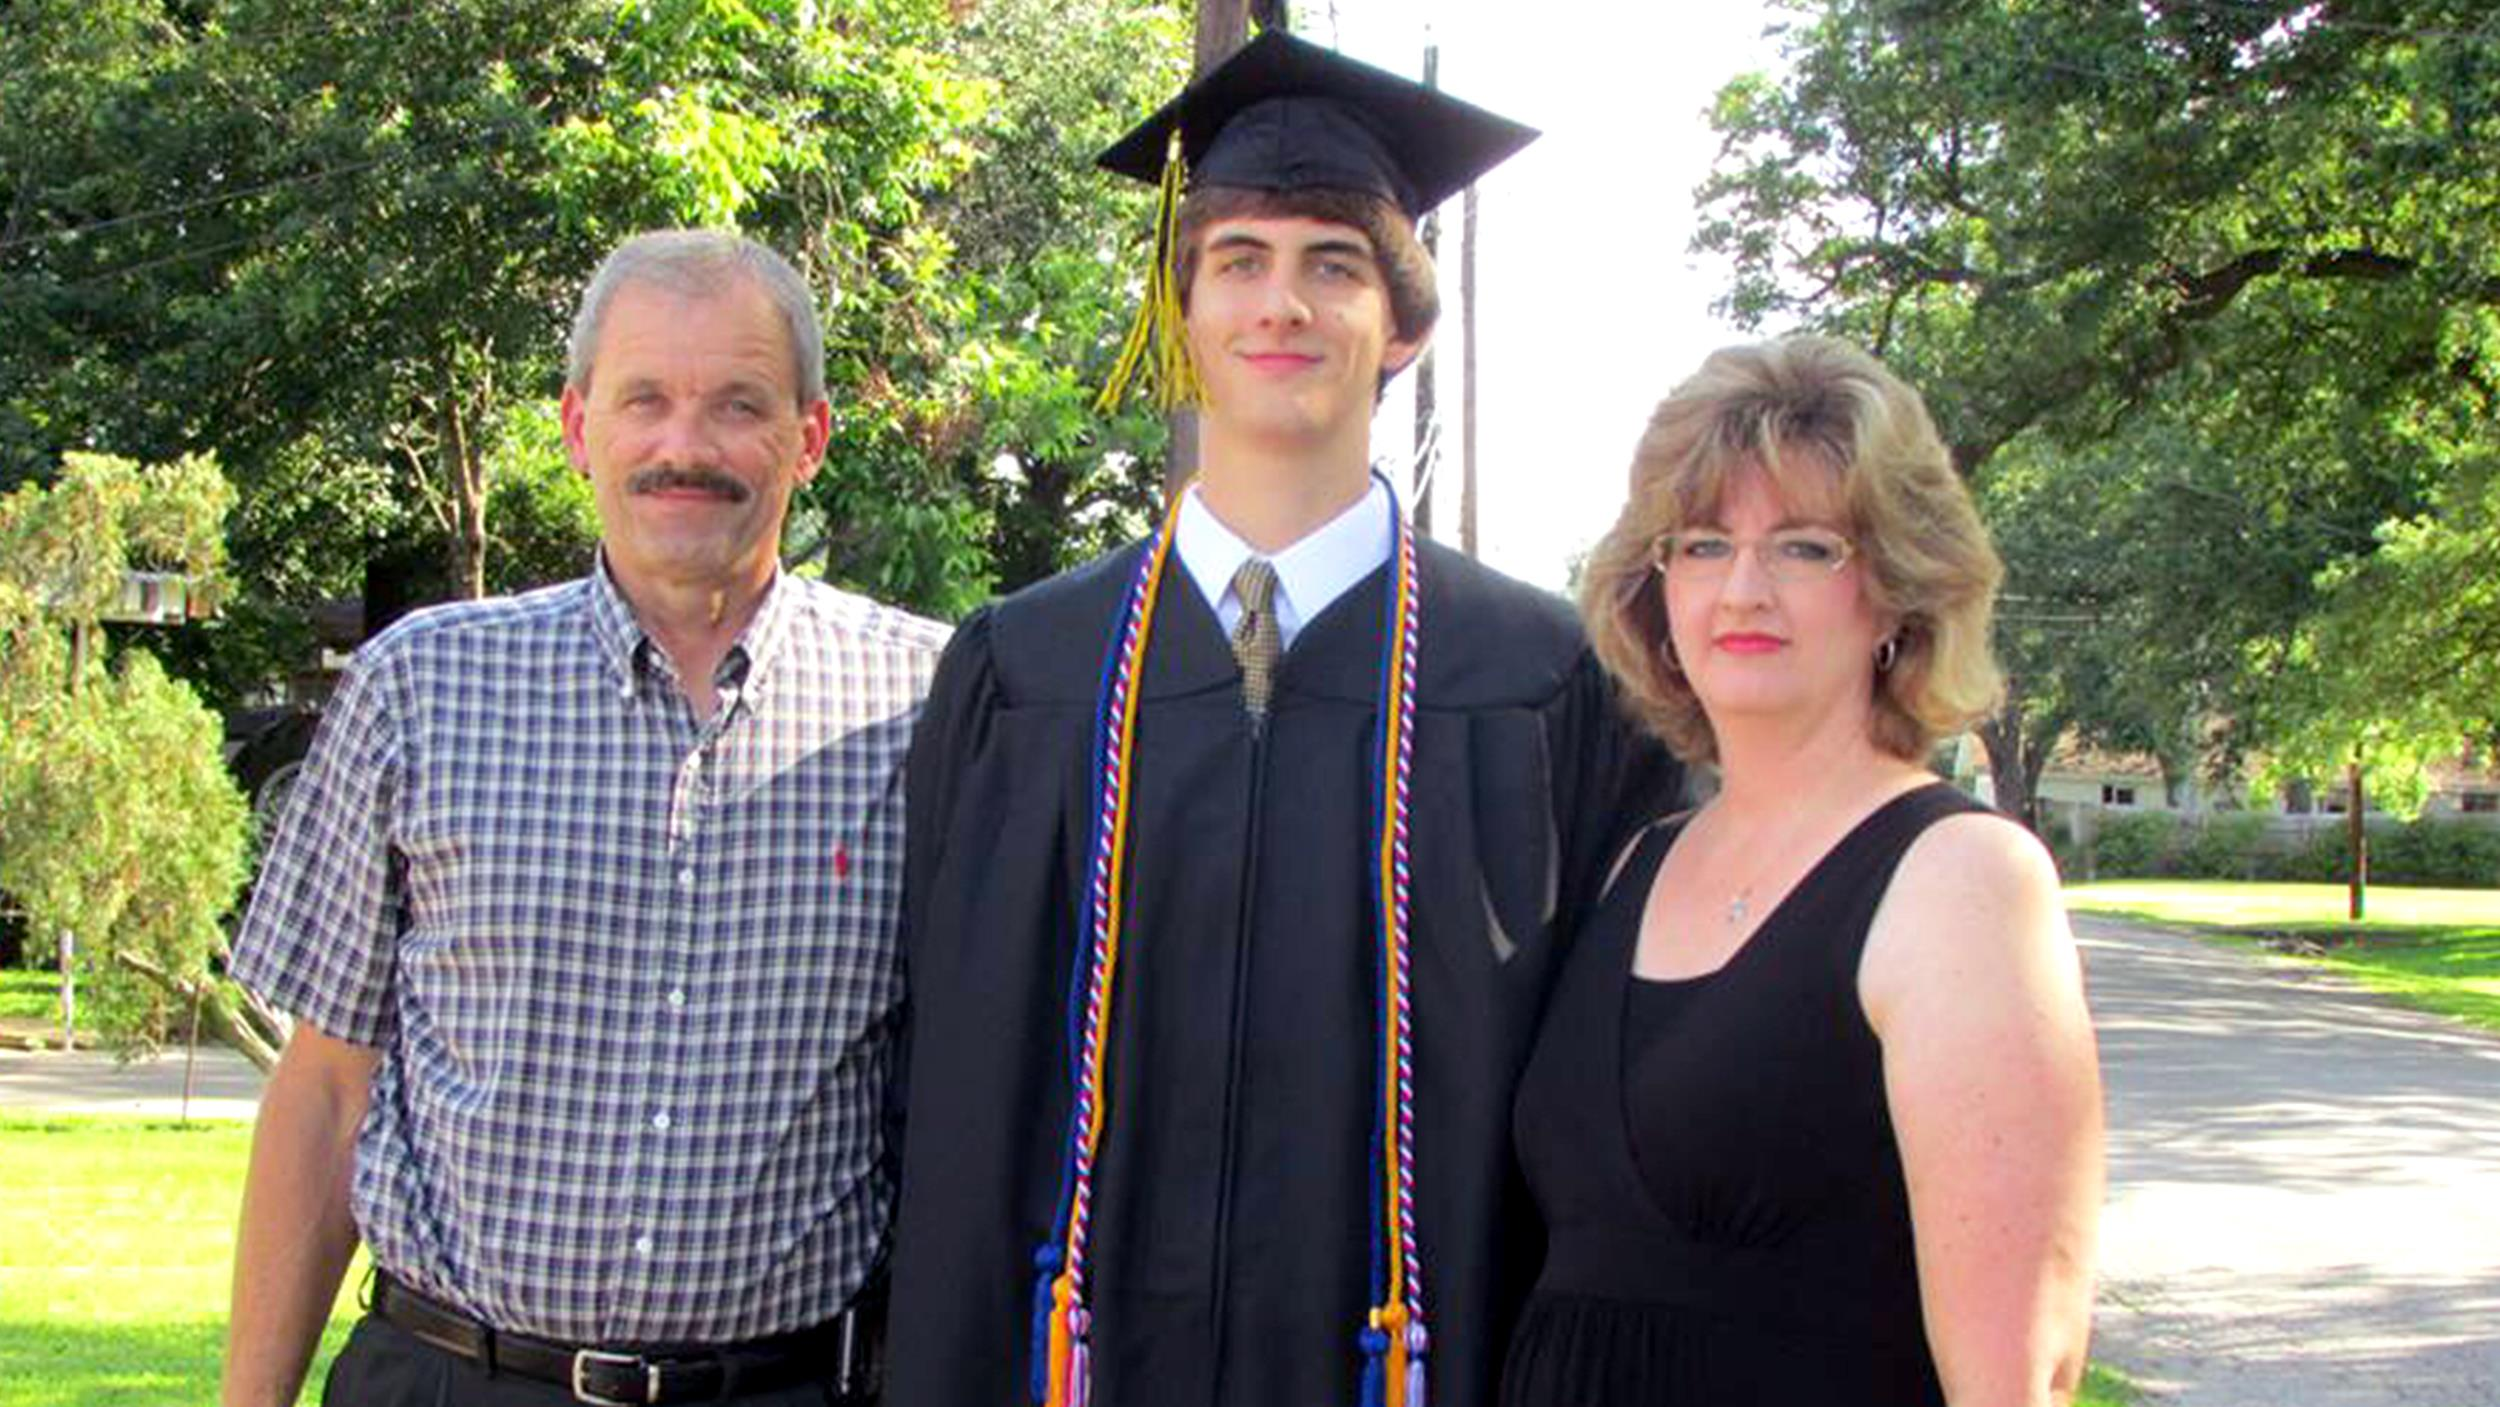 """These are the proud parents of Joey Grimaldi. He graduated with a 2.3 GPA and was voted """"Most Likely to Succeed – with the Babes."""" He's decided to forgo college for a gap year as he entertains his options – both stock and dating. To fund this venture, he plans to live at home and ask his parents for a raise in his allowance."""